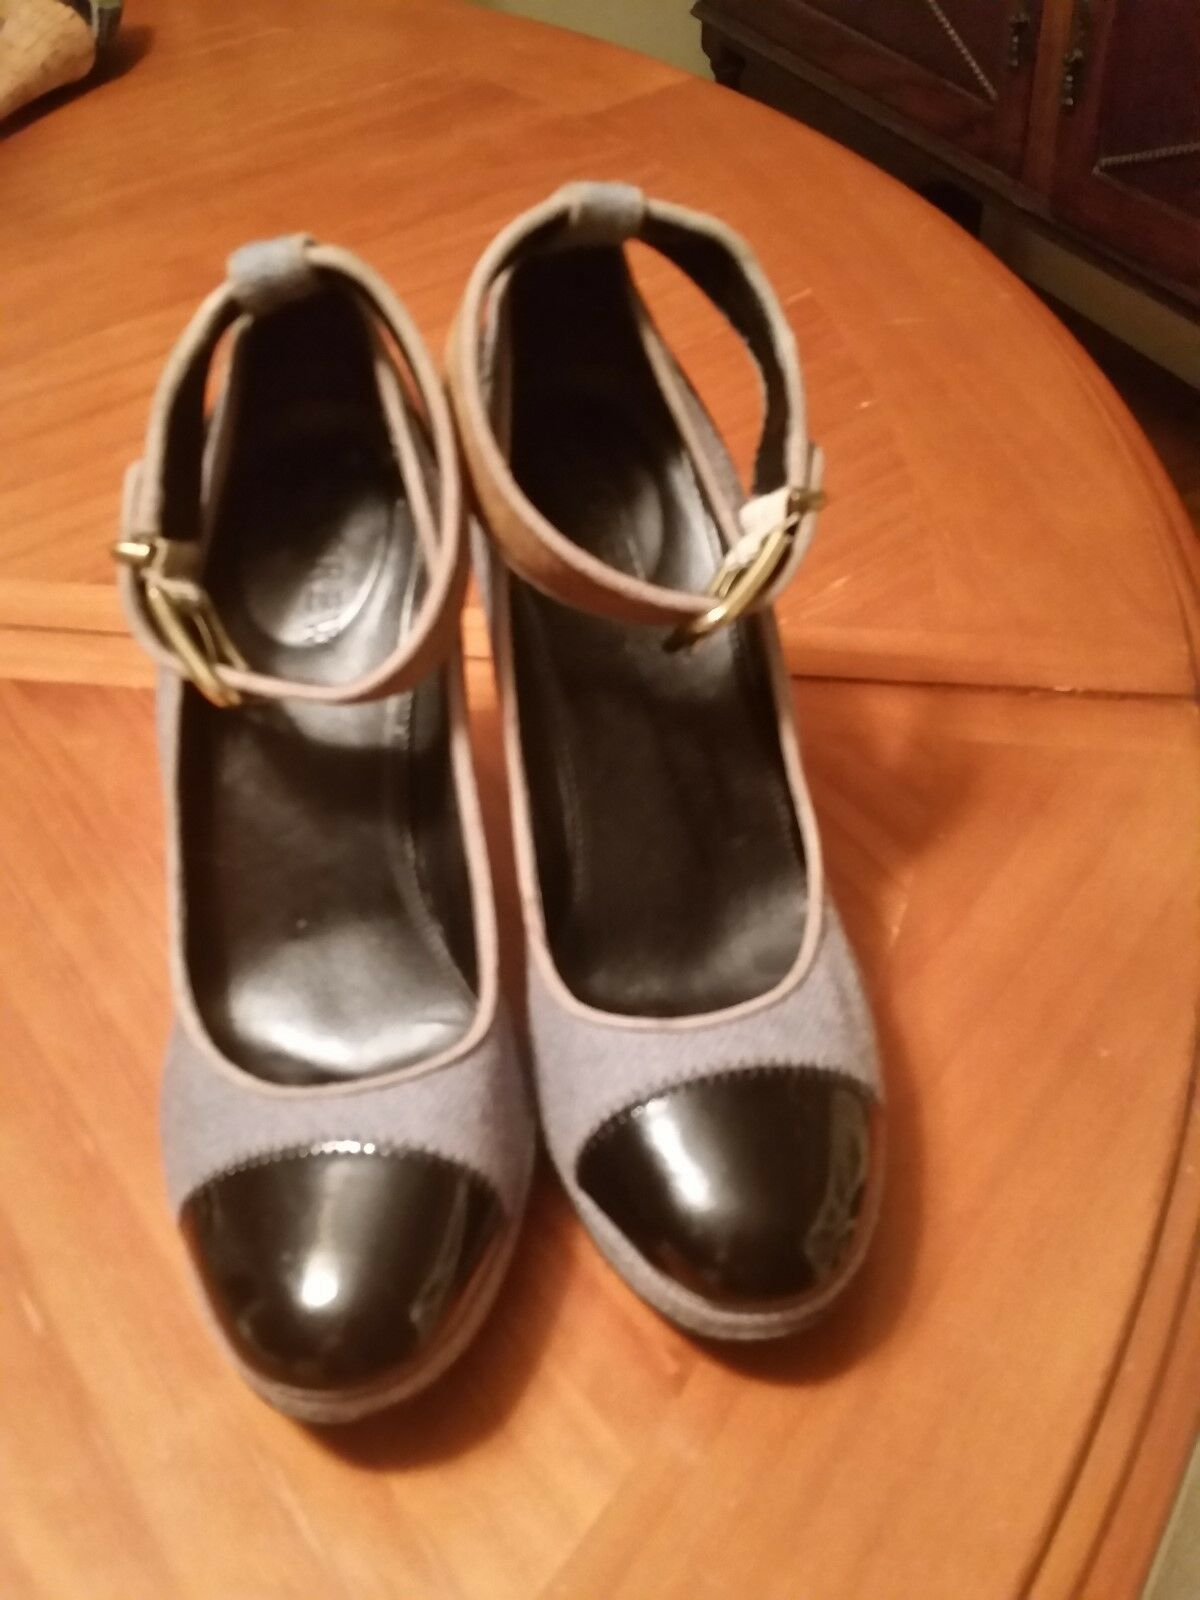 J. US Crew Italian shoes heels US J. 7.5 897c23